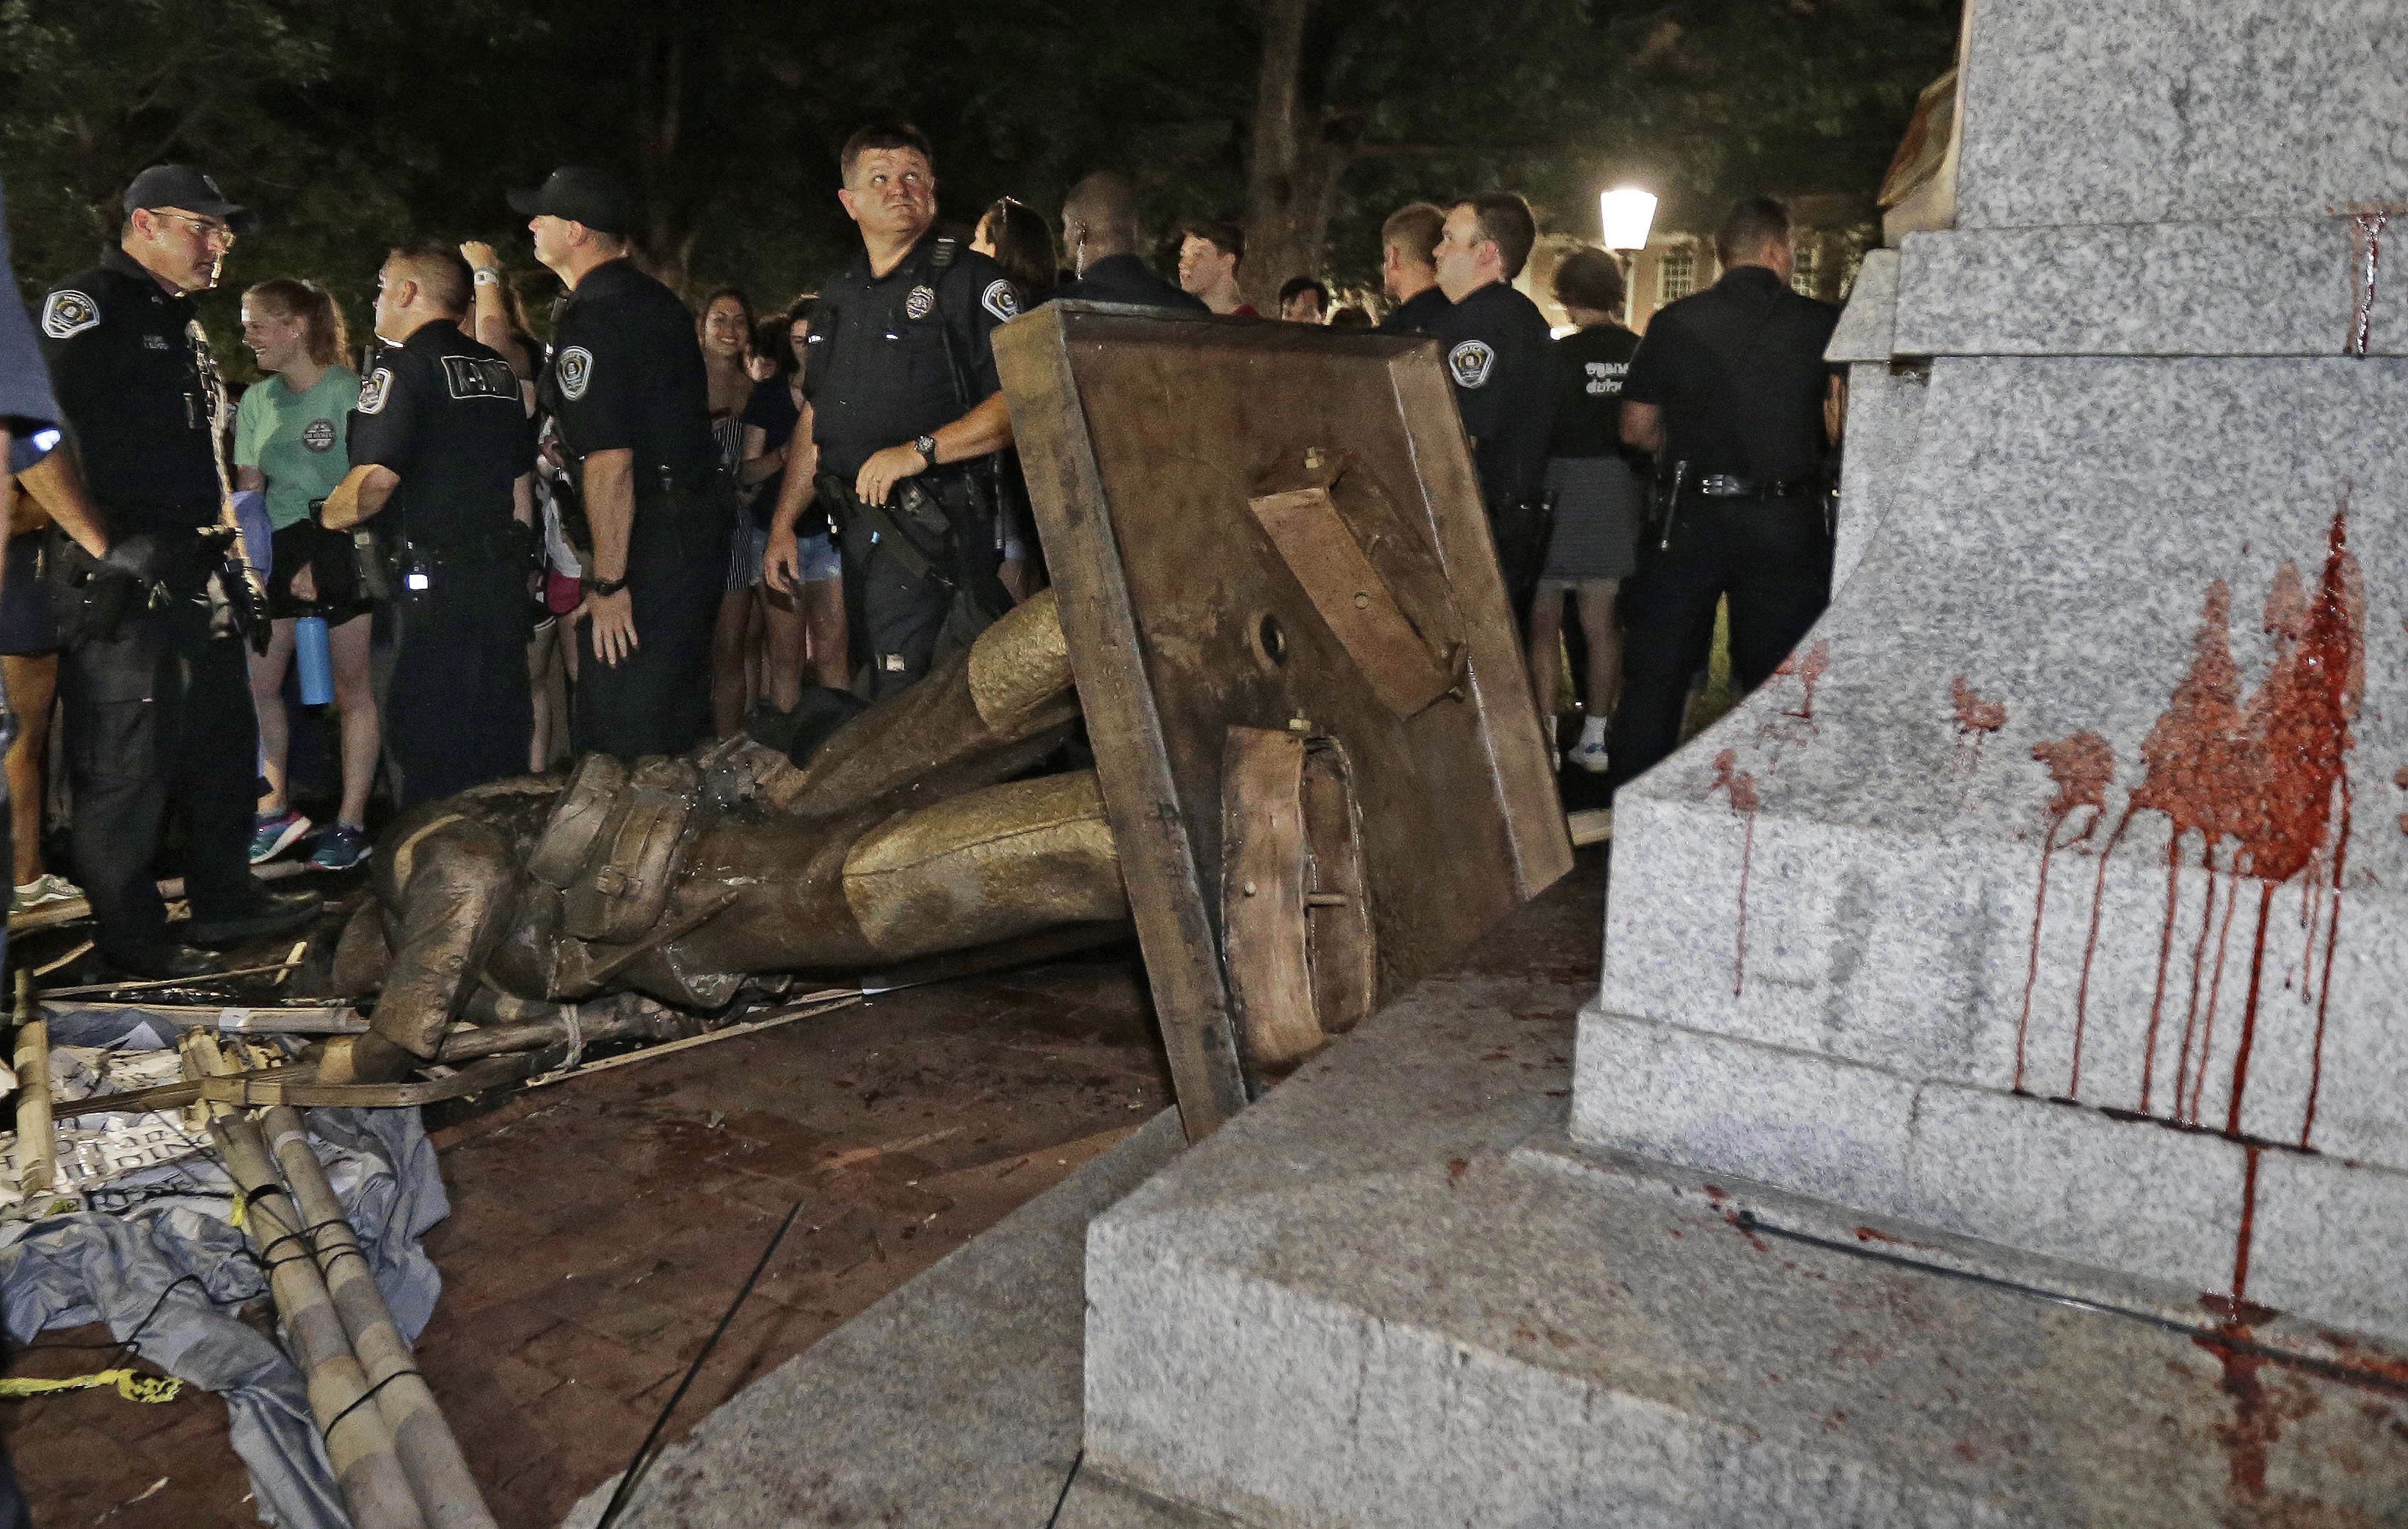 FILE- In this Monday, Aug. 20, 2018 file photo, police stand guard after the confederate statue known as Silent Sam was toppled by protesters on campus at the University of North Carolina in Chapel Hill, N.C. Police are filing charges against three people who they say helped bring down the Confederate statue at North Carolina's flagship university. University of North Carolina Police issued a statement Friday, Aug. 24, 2018, that the department has filed warrants for three people on charges of misdemeanor rioting and defacing a public monument. (AP Photo/Gerry Broome, File)